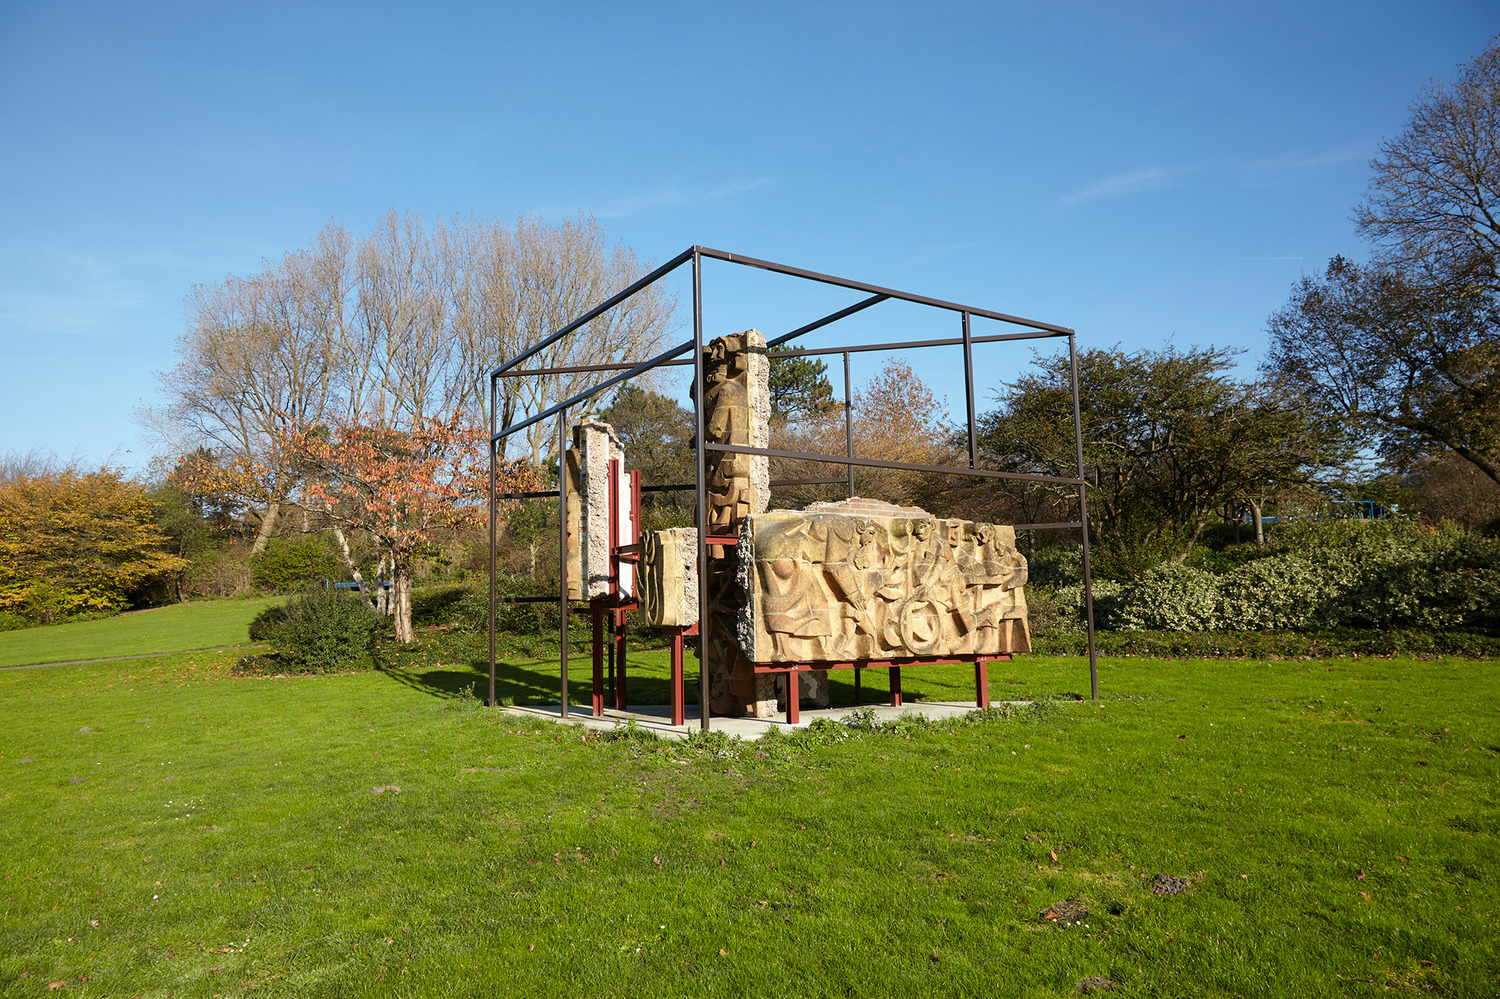 External photo of abstract structure comprising stone walls set within a steel framework, located in parkland of grass and background trees